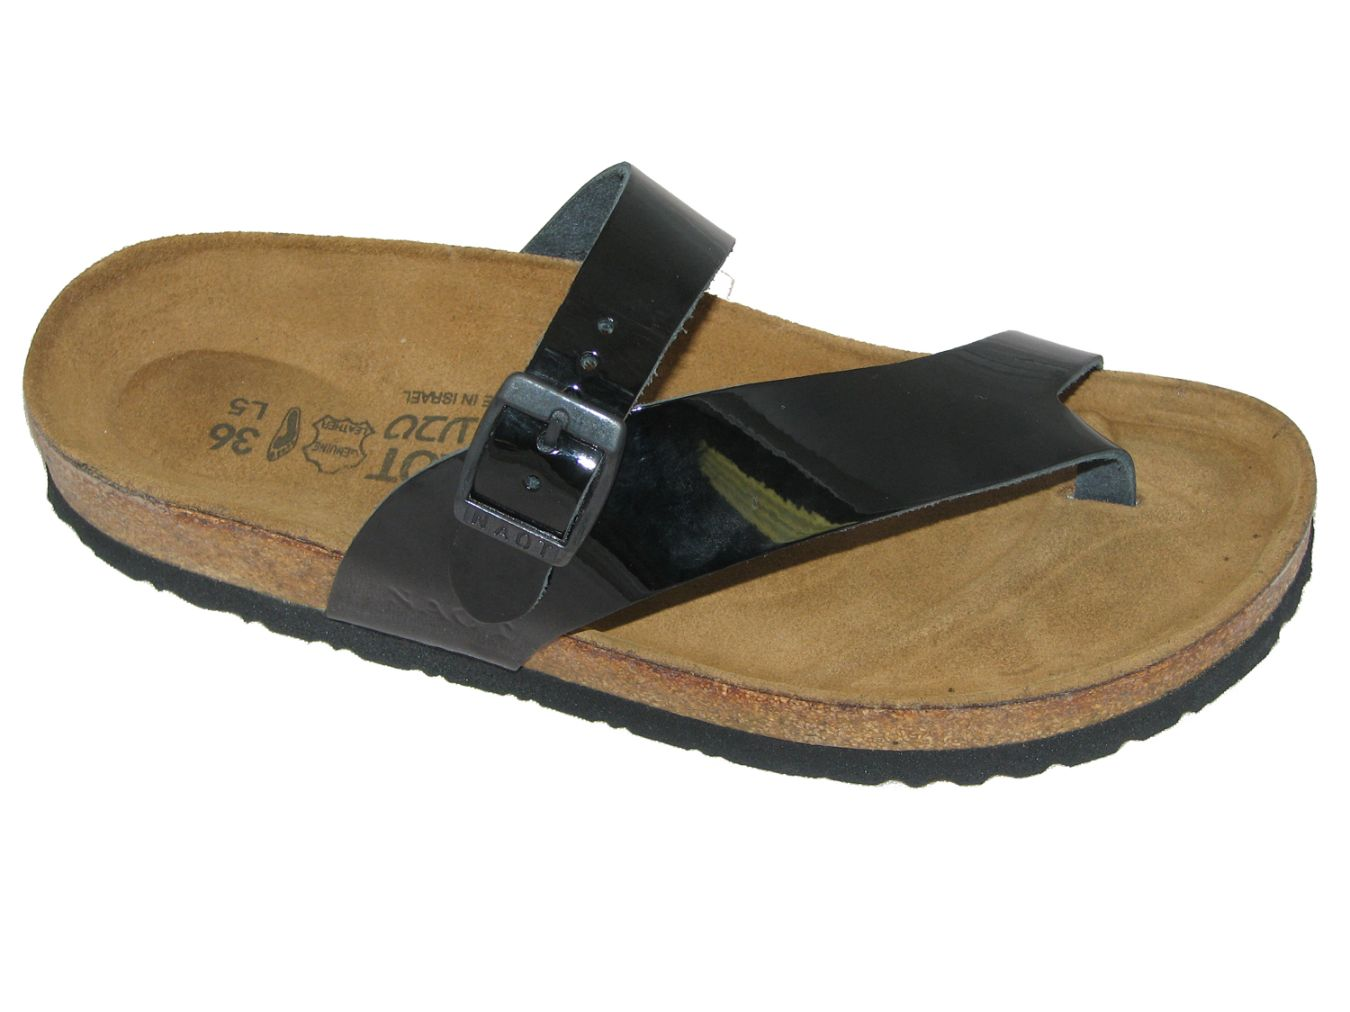 Naot Tahoe Sandal for Women in Black Patent Leather